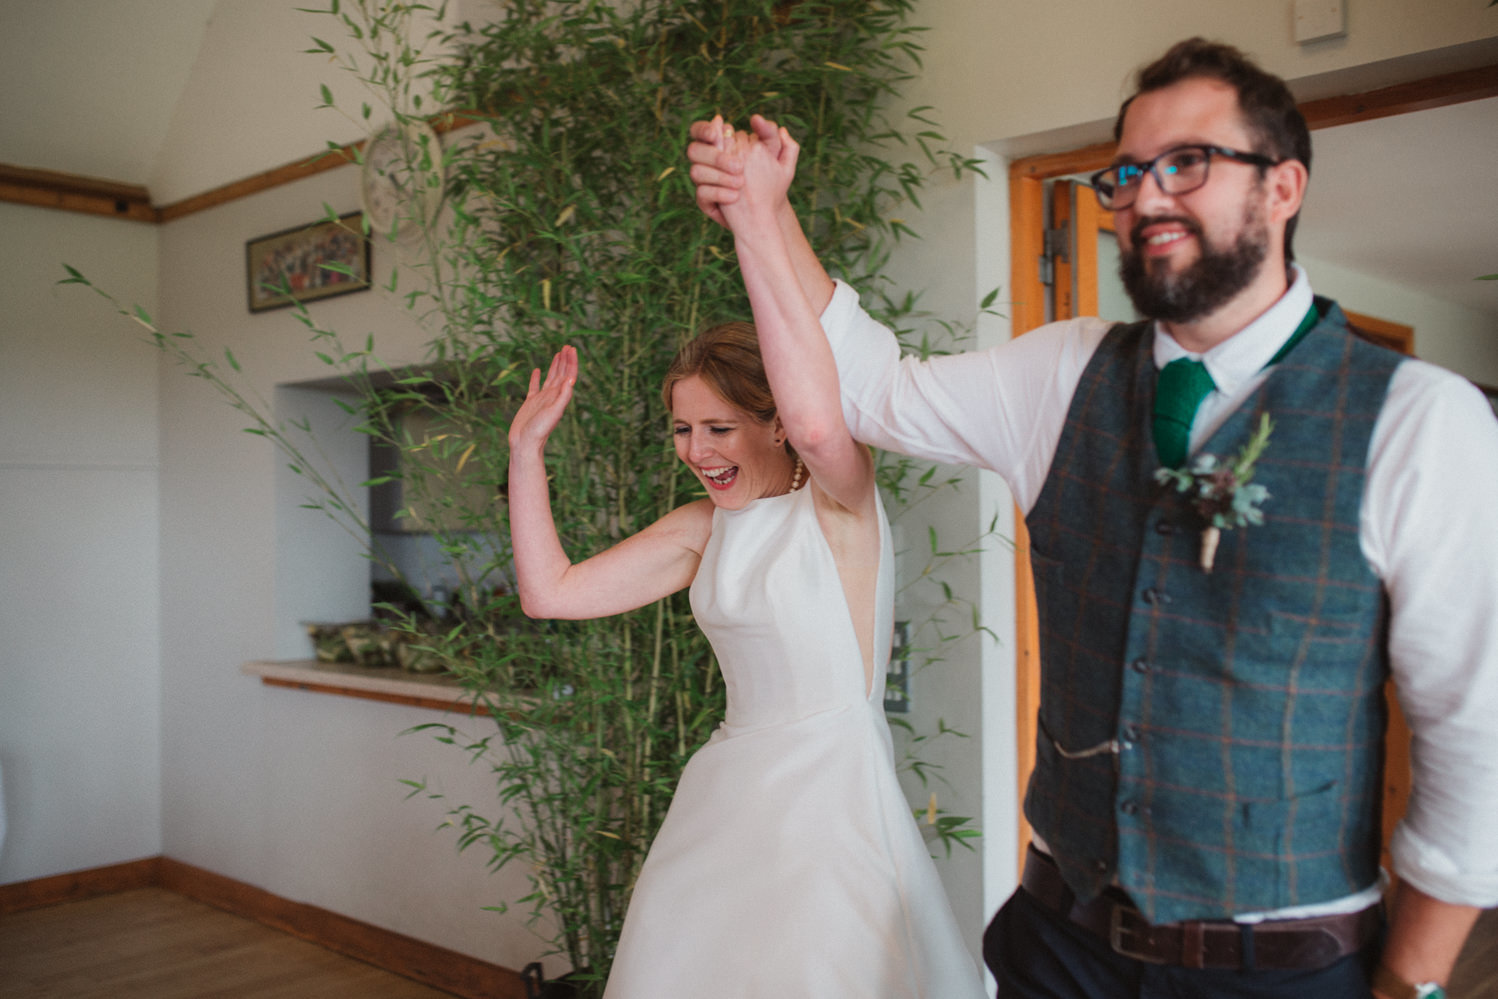 Relaxed newlyweds cheering as they walk in to their Binham Village Hall wedding reception